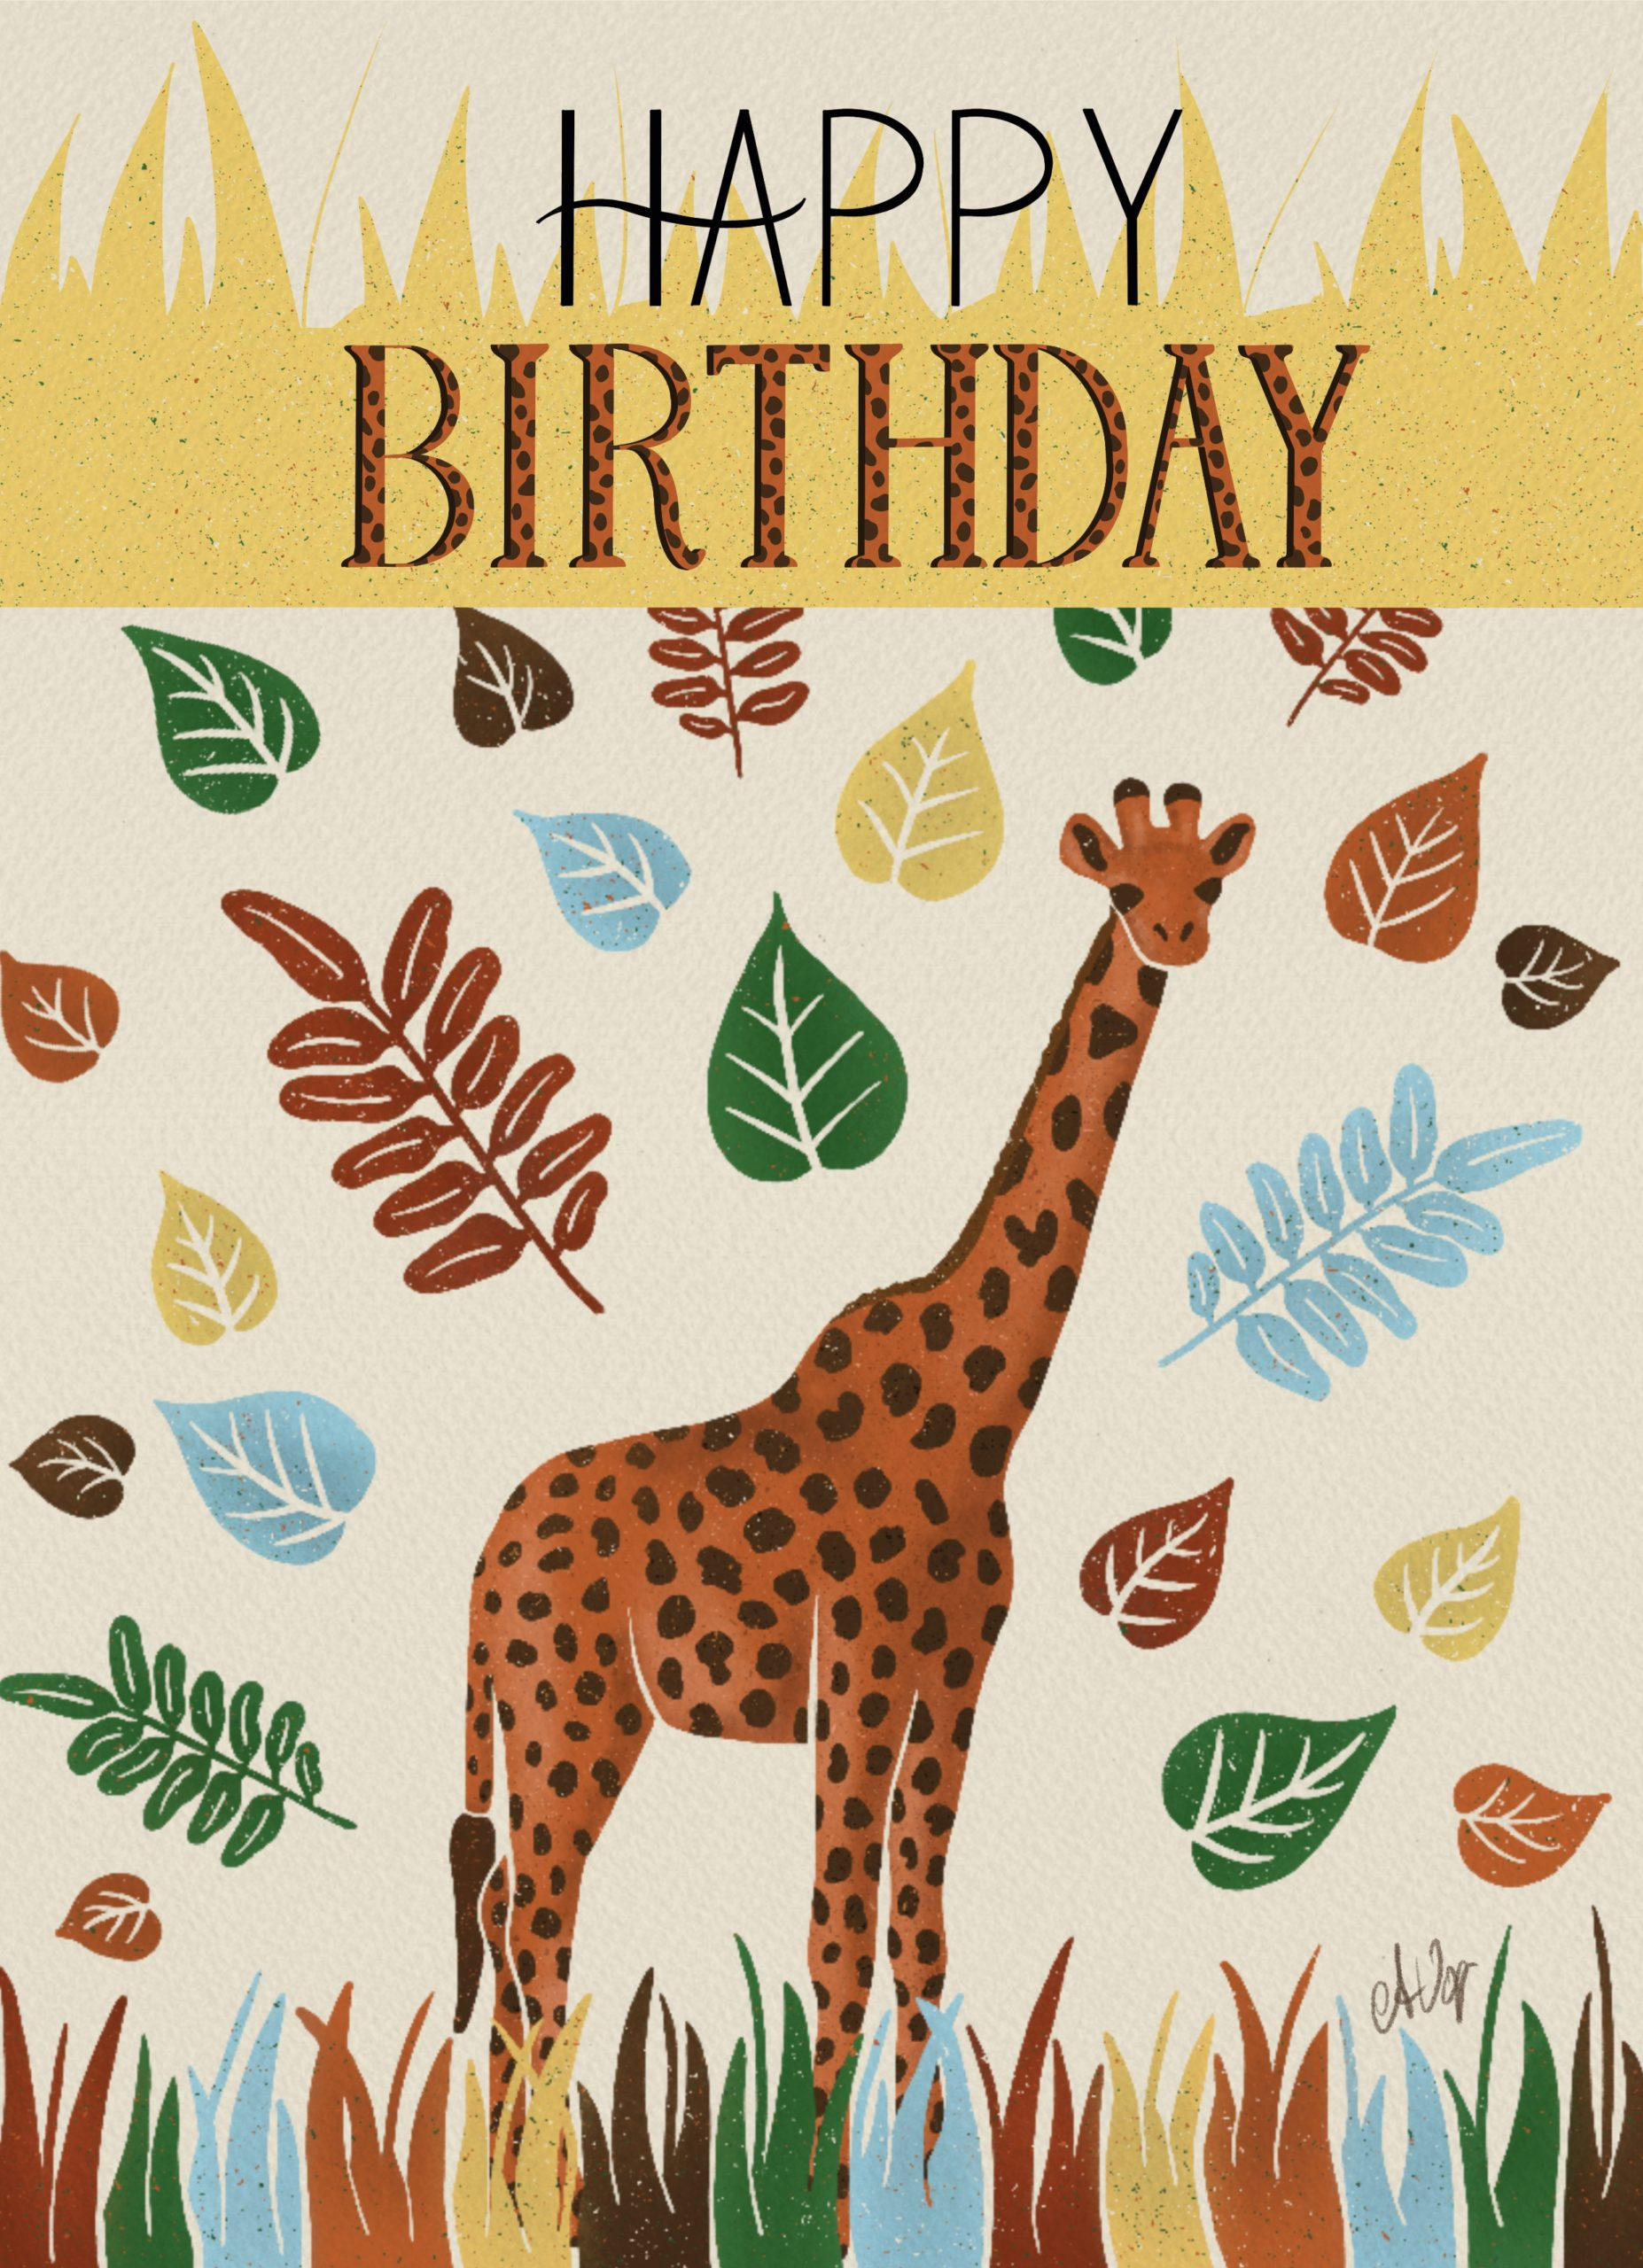 Giraffe_Happy_Birthday_